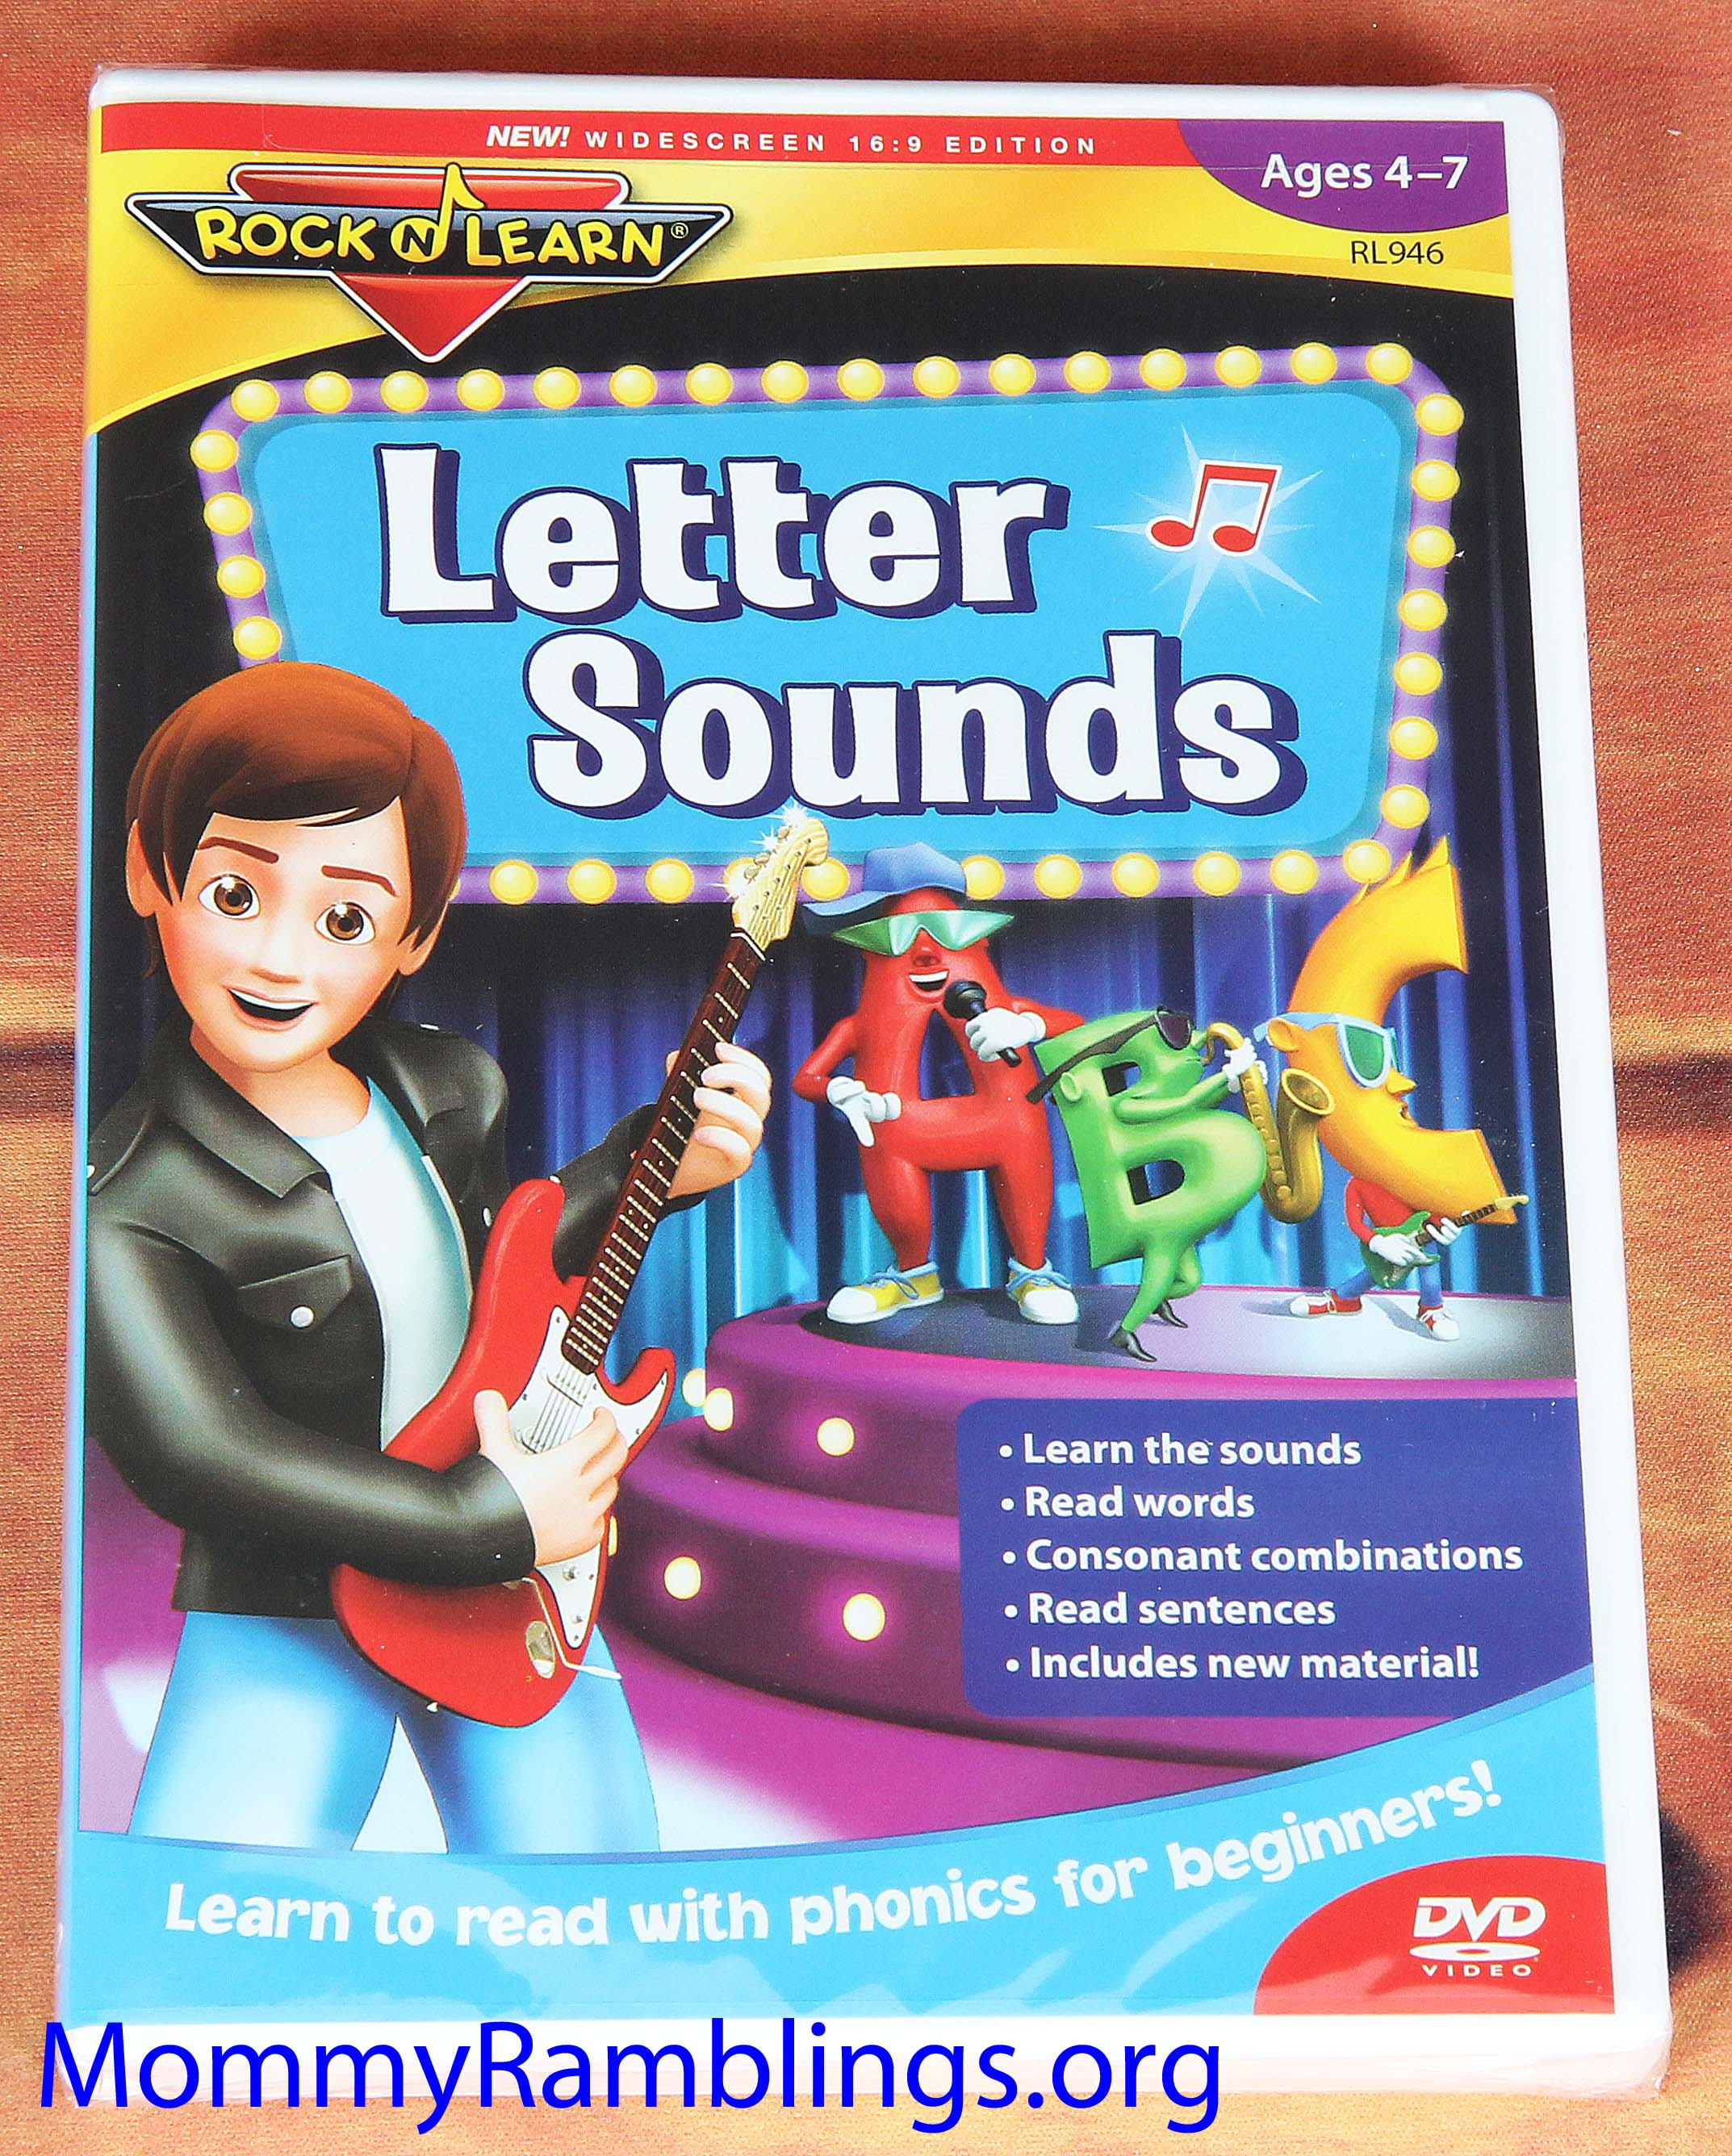 Rock N Learn New Letter Sounds DVD Review, Discount Code & Give-Away ...